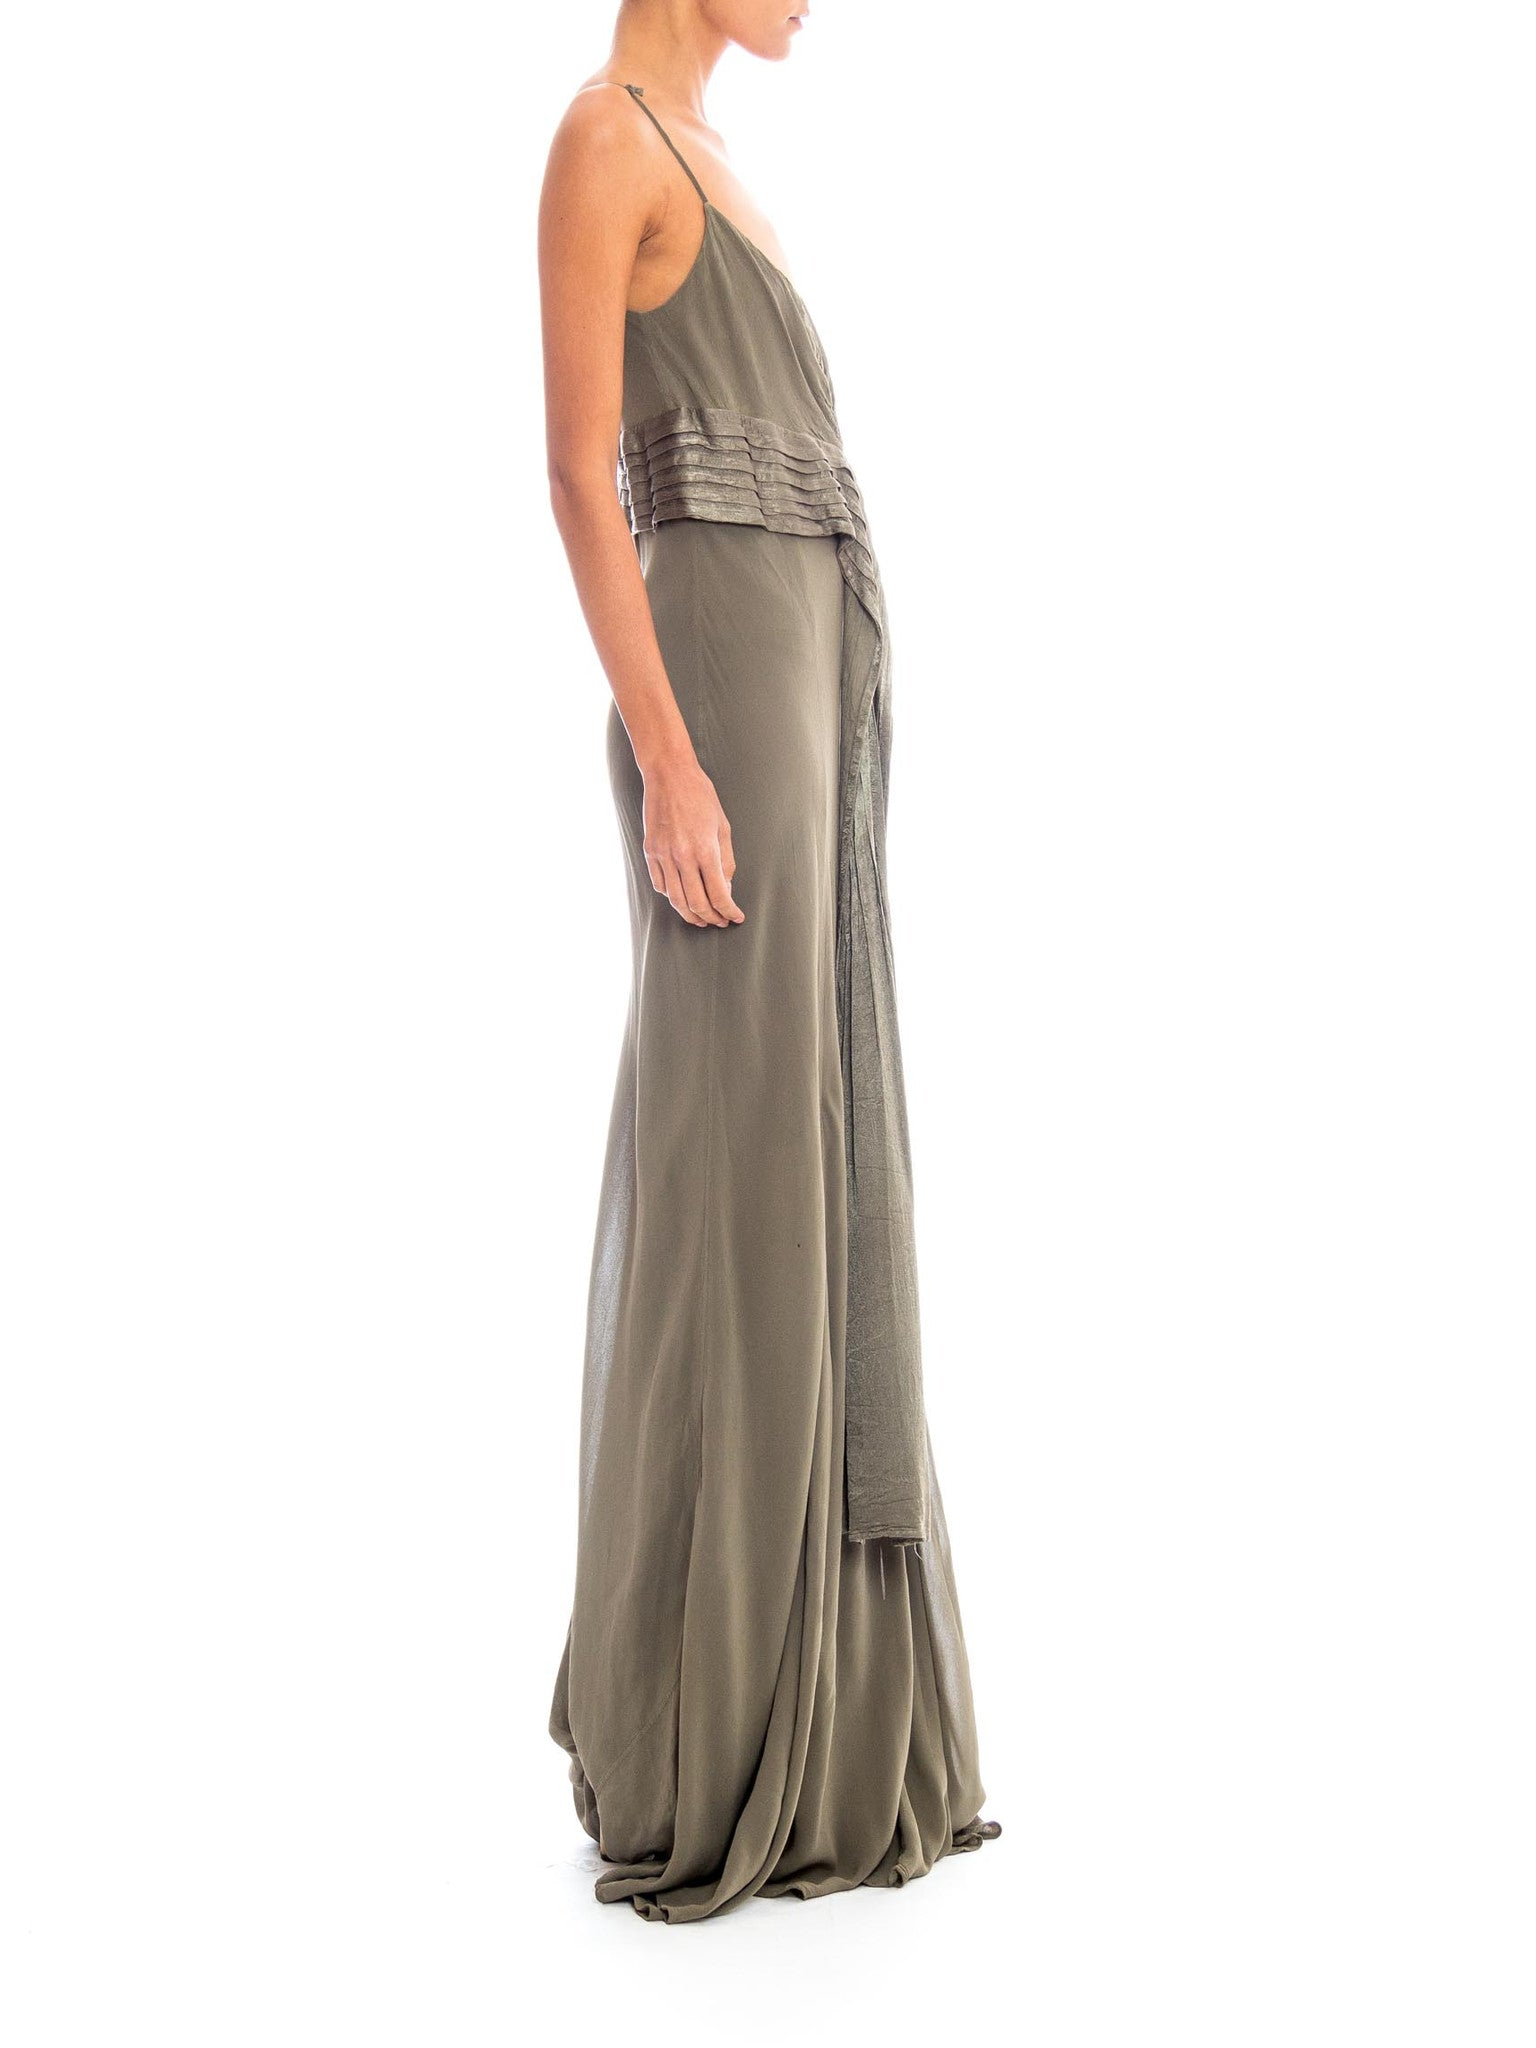 1990S Ghost Olive Green Bias Cut Rayon Chiffon Gown